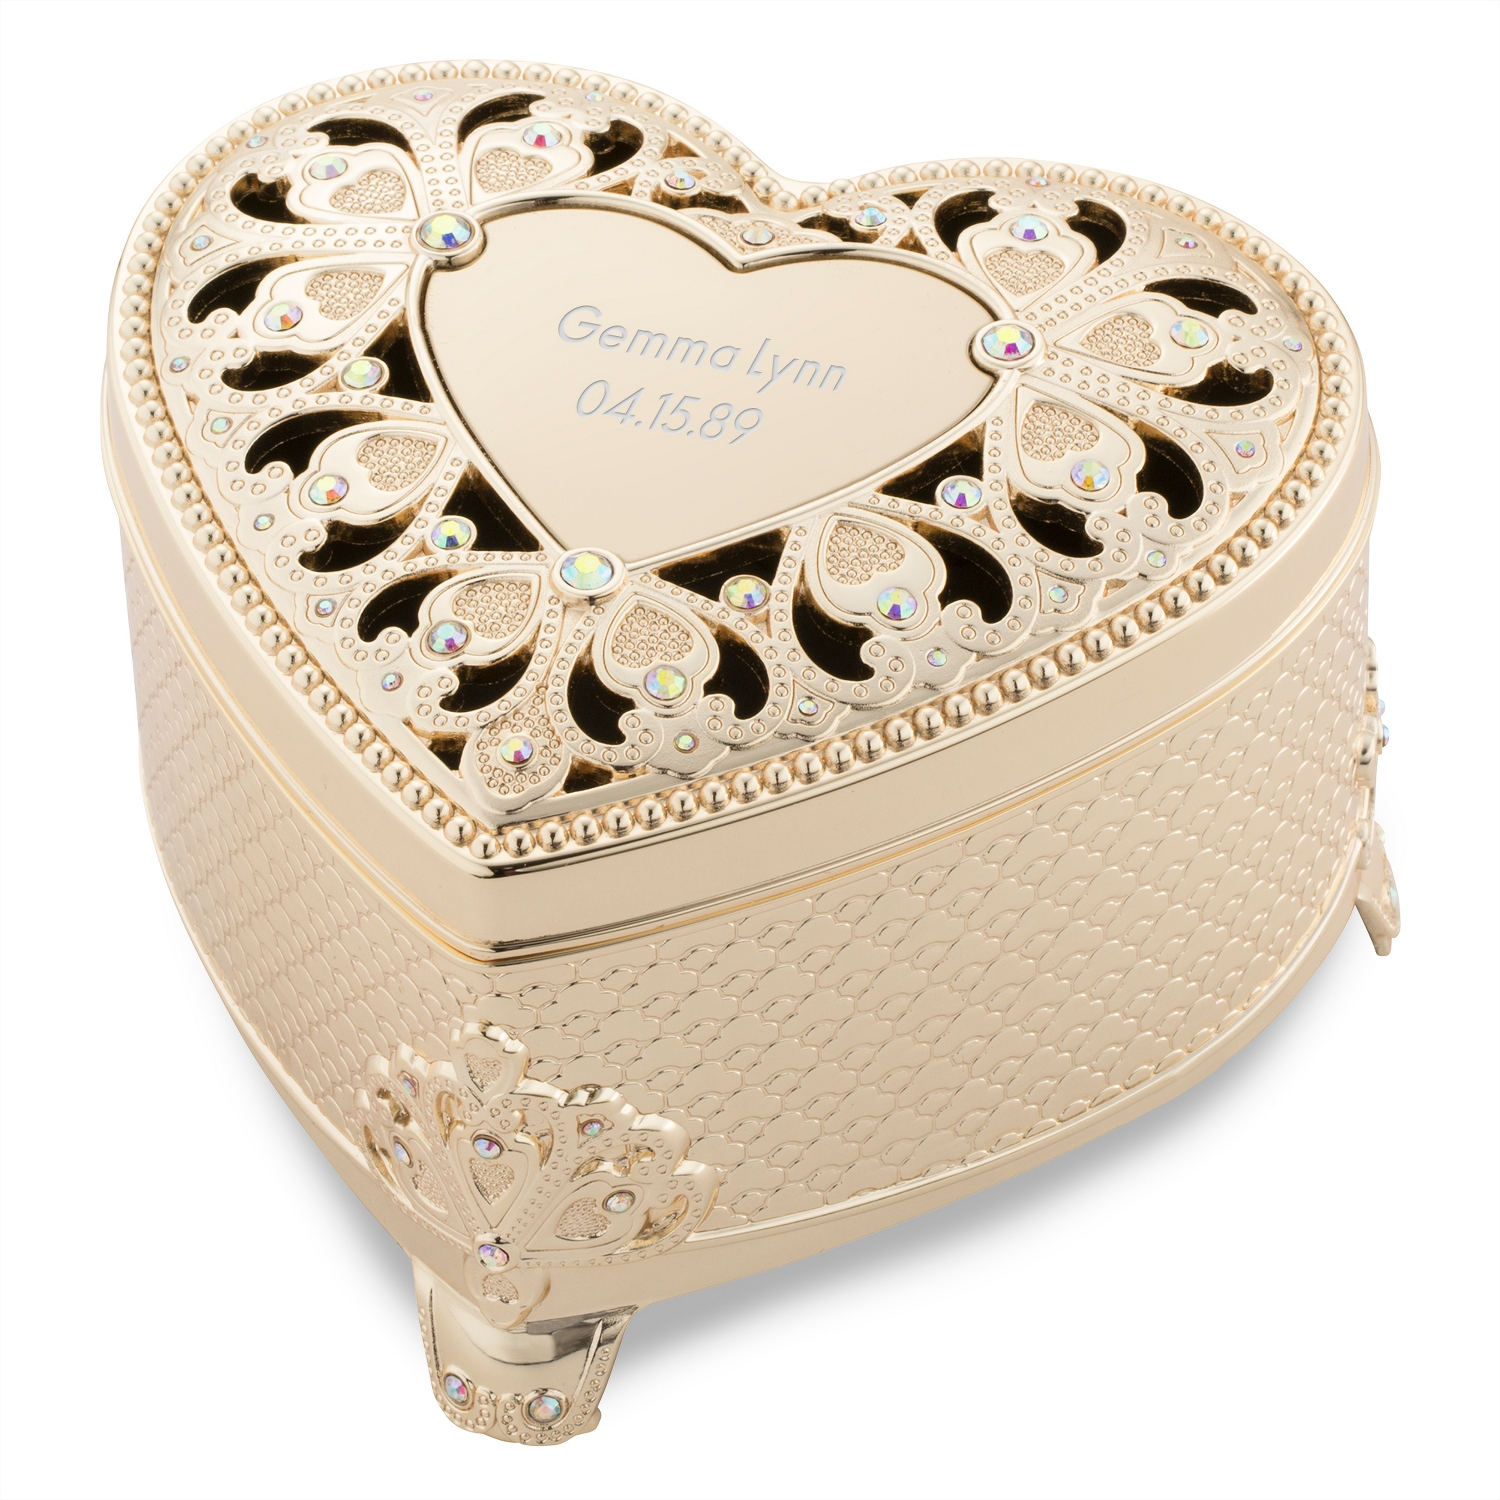 personalized keepsake boxes at things remembered